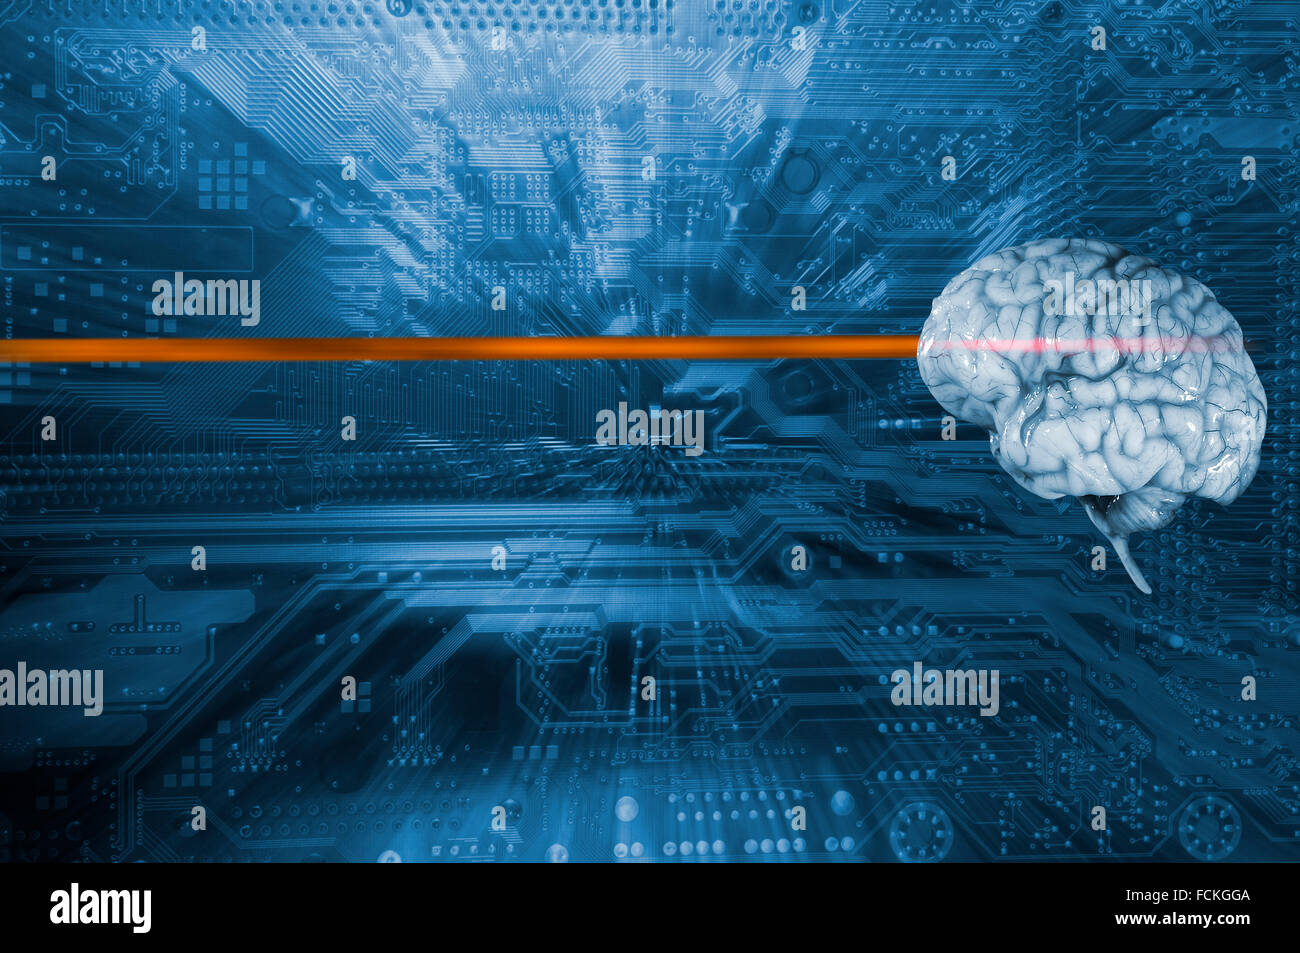 Cerveau humain et l'ordinateur, l'intelligence artificielle circuitboard Photo Stock